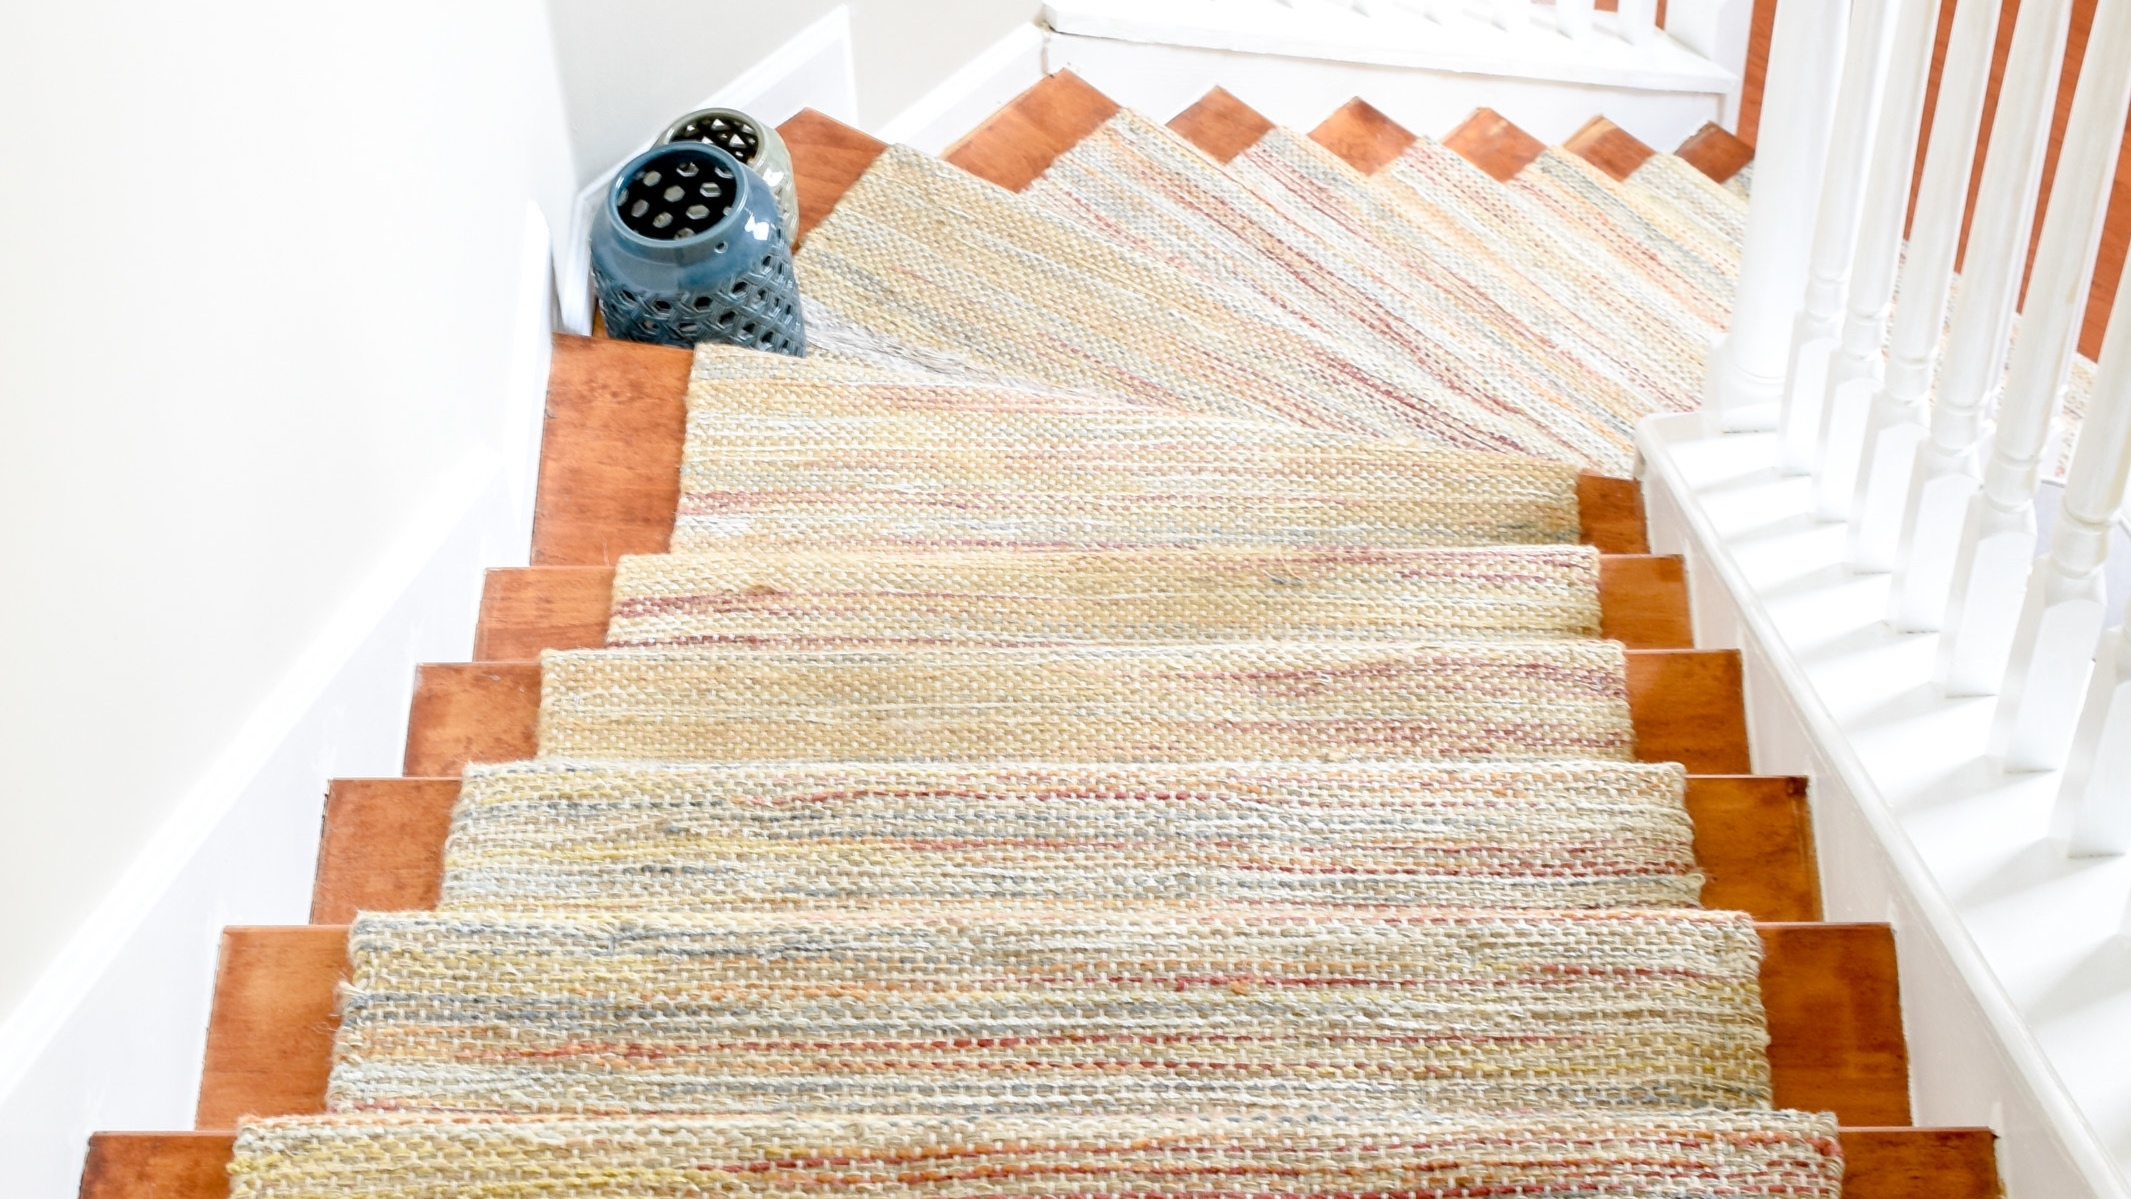 Diy Hardwood Staircase Makeover Replacing Carpet With Wood Treads | Carpeted Stairs To Hardwood | Diy | Hardwood Flooring | Middle | Old House | Staircase